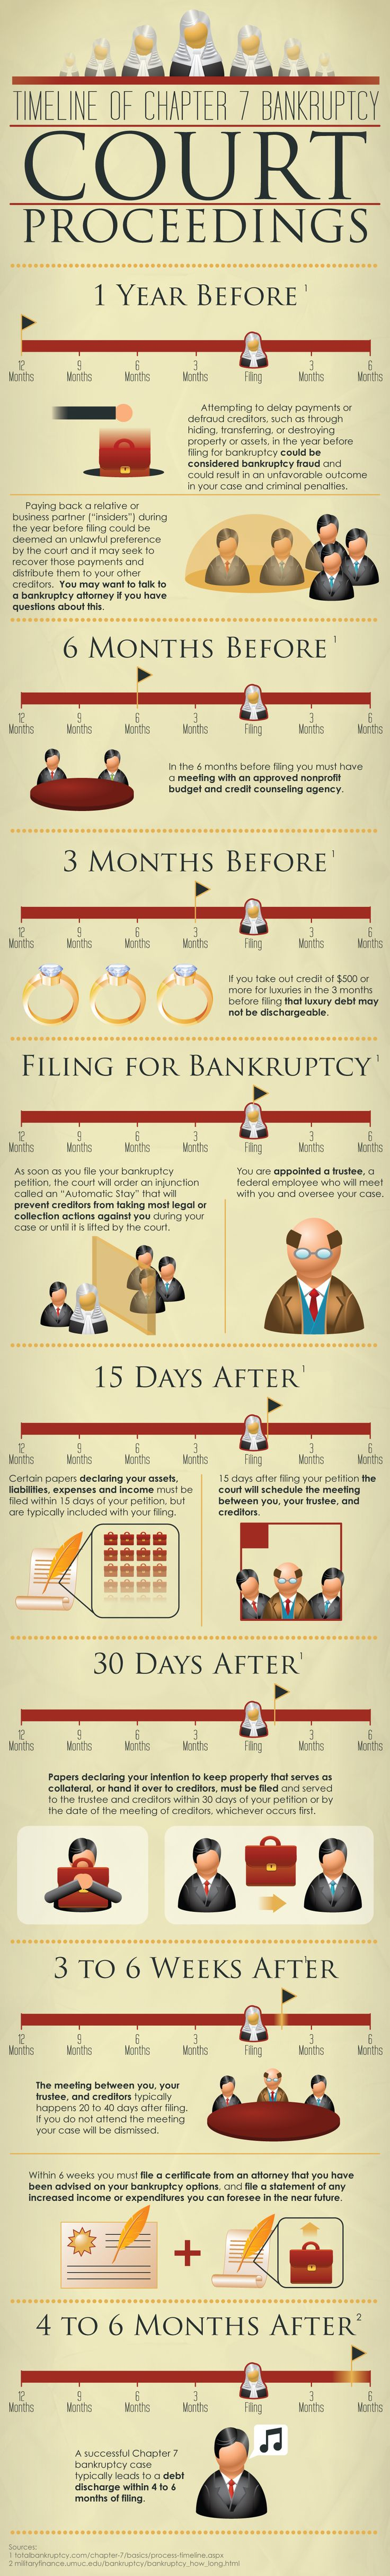 18 best bankruptcy images on pinterest | debt free, personal